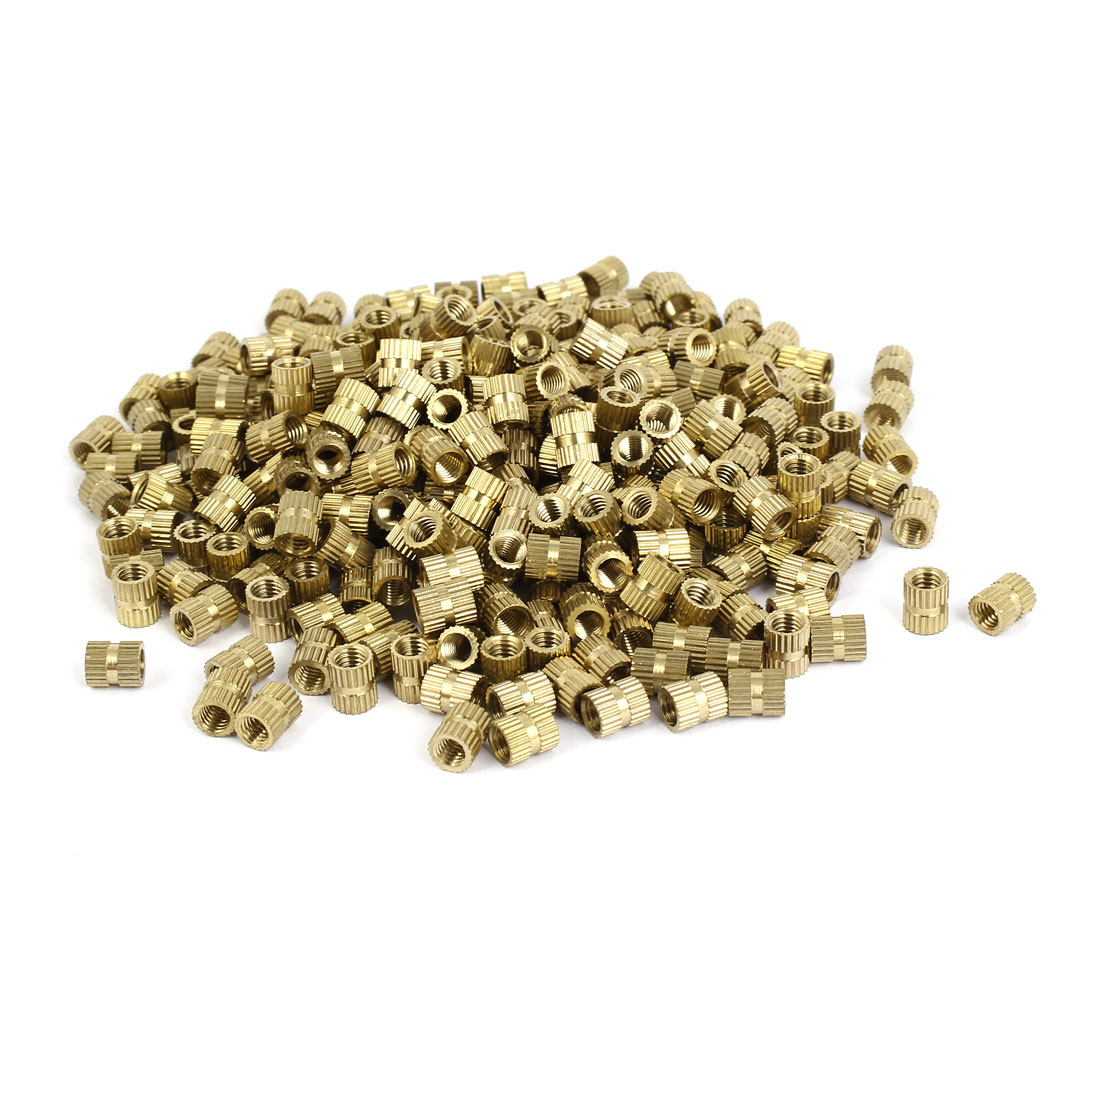 M5 x 8mm 0.8mm Pitch Brass Cylinder Knurled Threaded Round Insert Nuts 500PCS